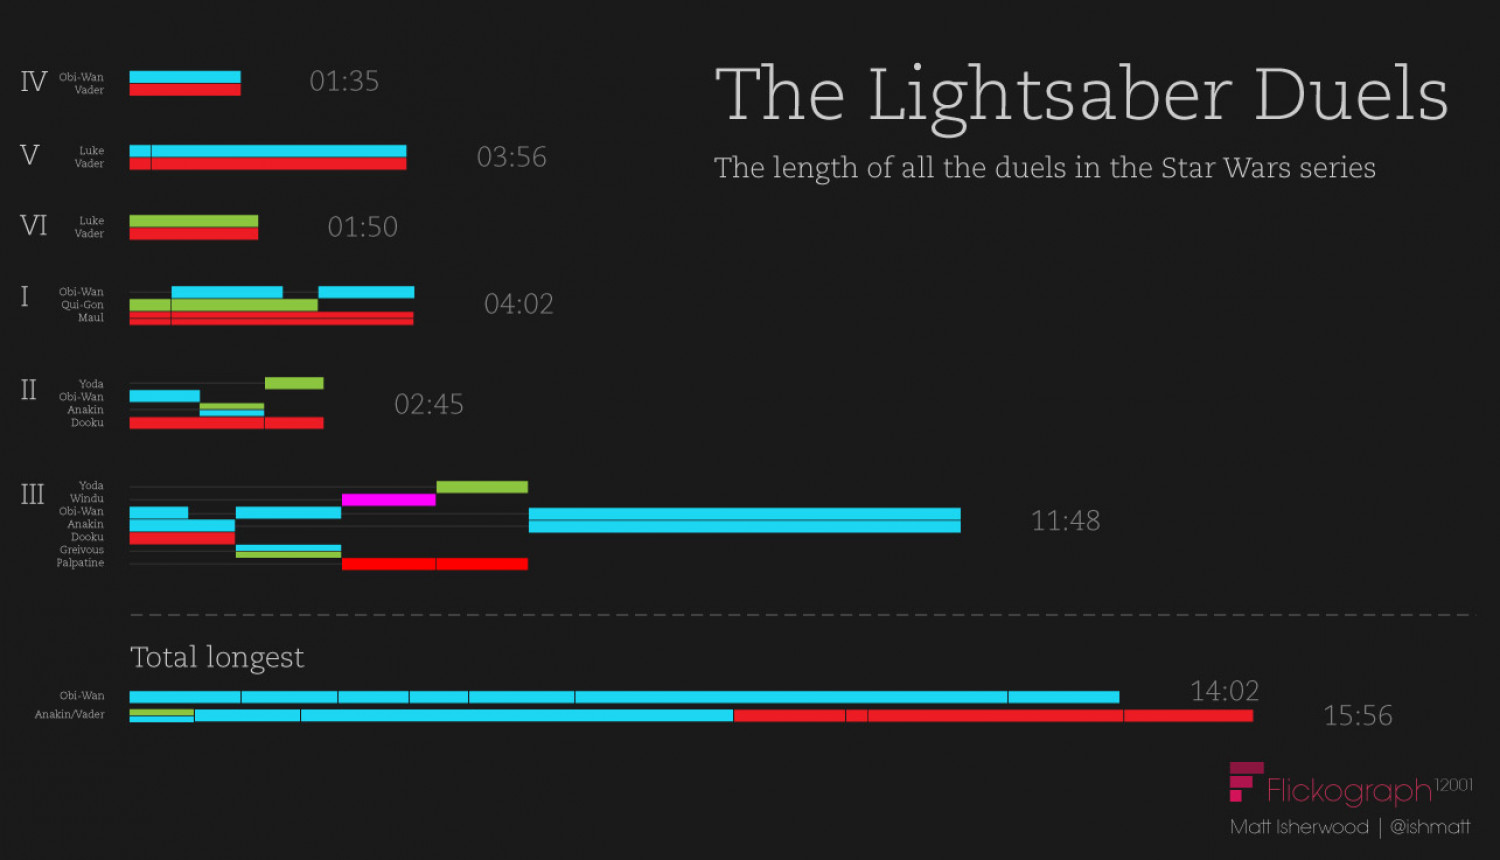 Lightsaber Duels In Star Wars Visual Ly